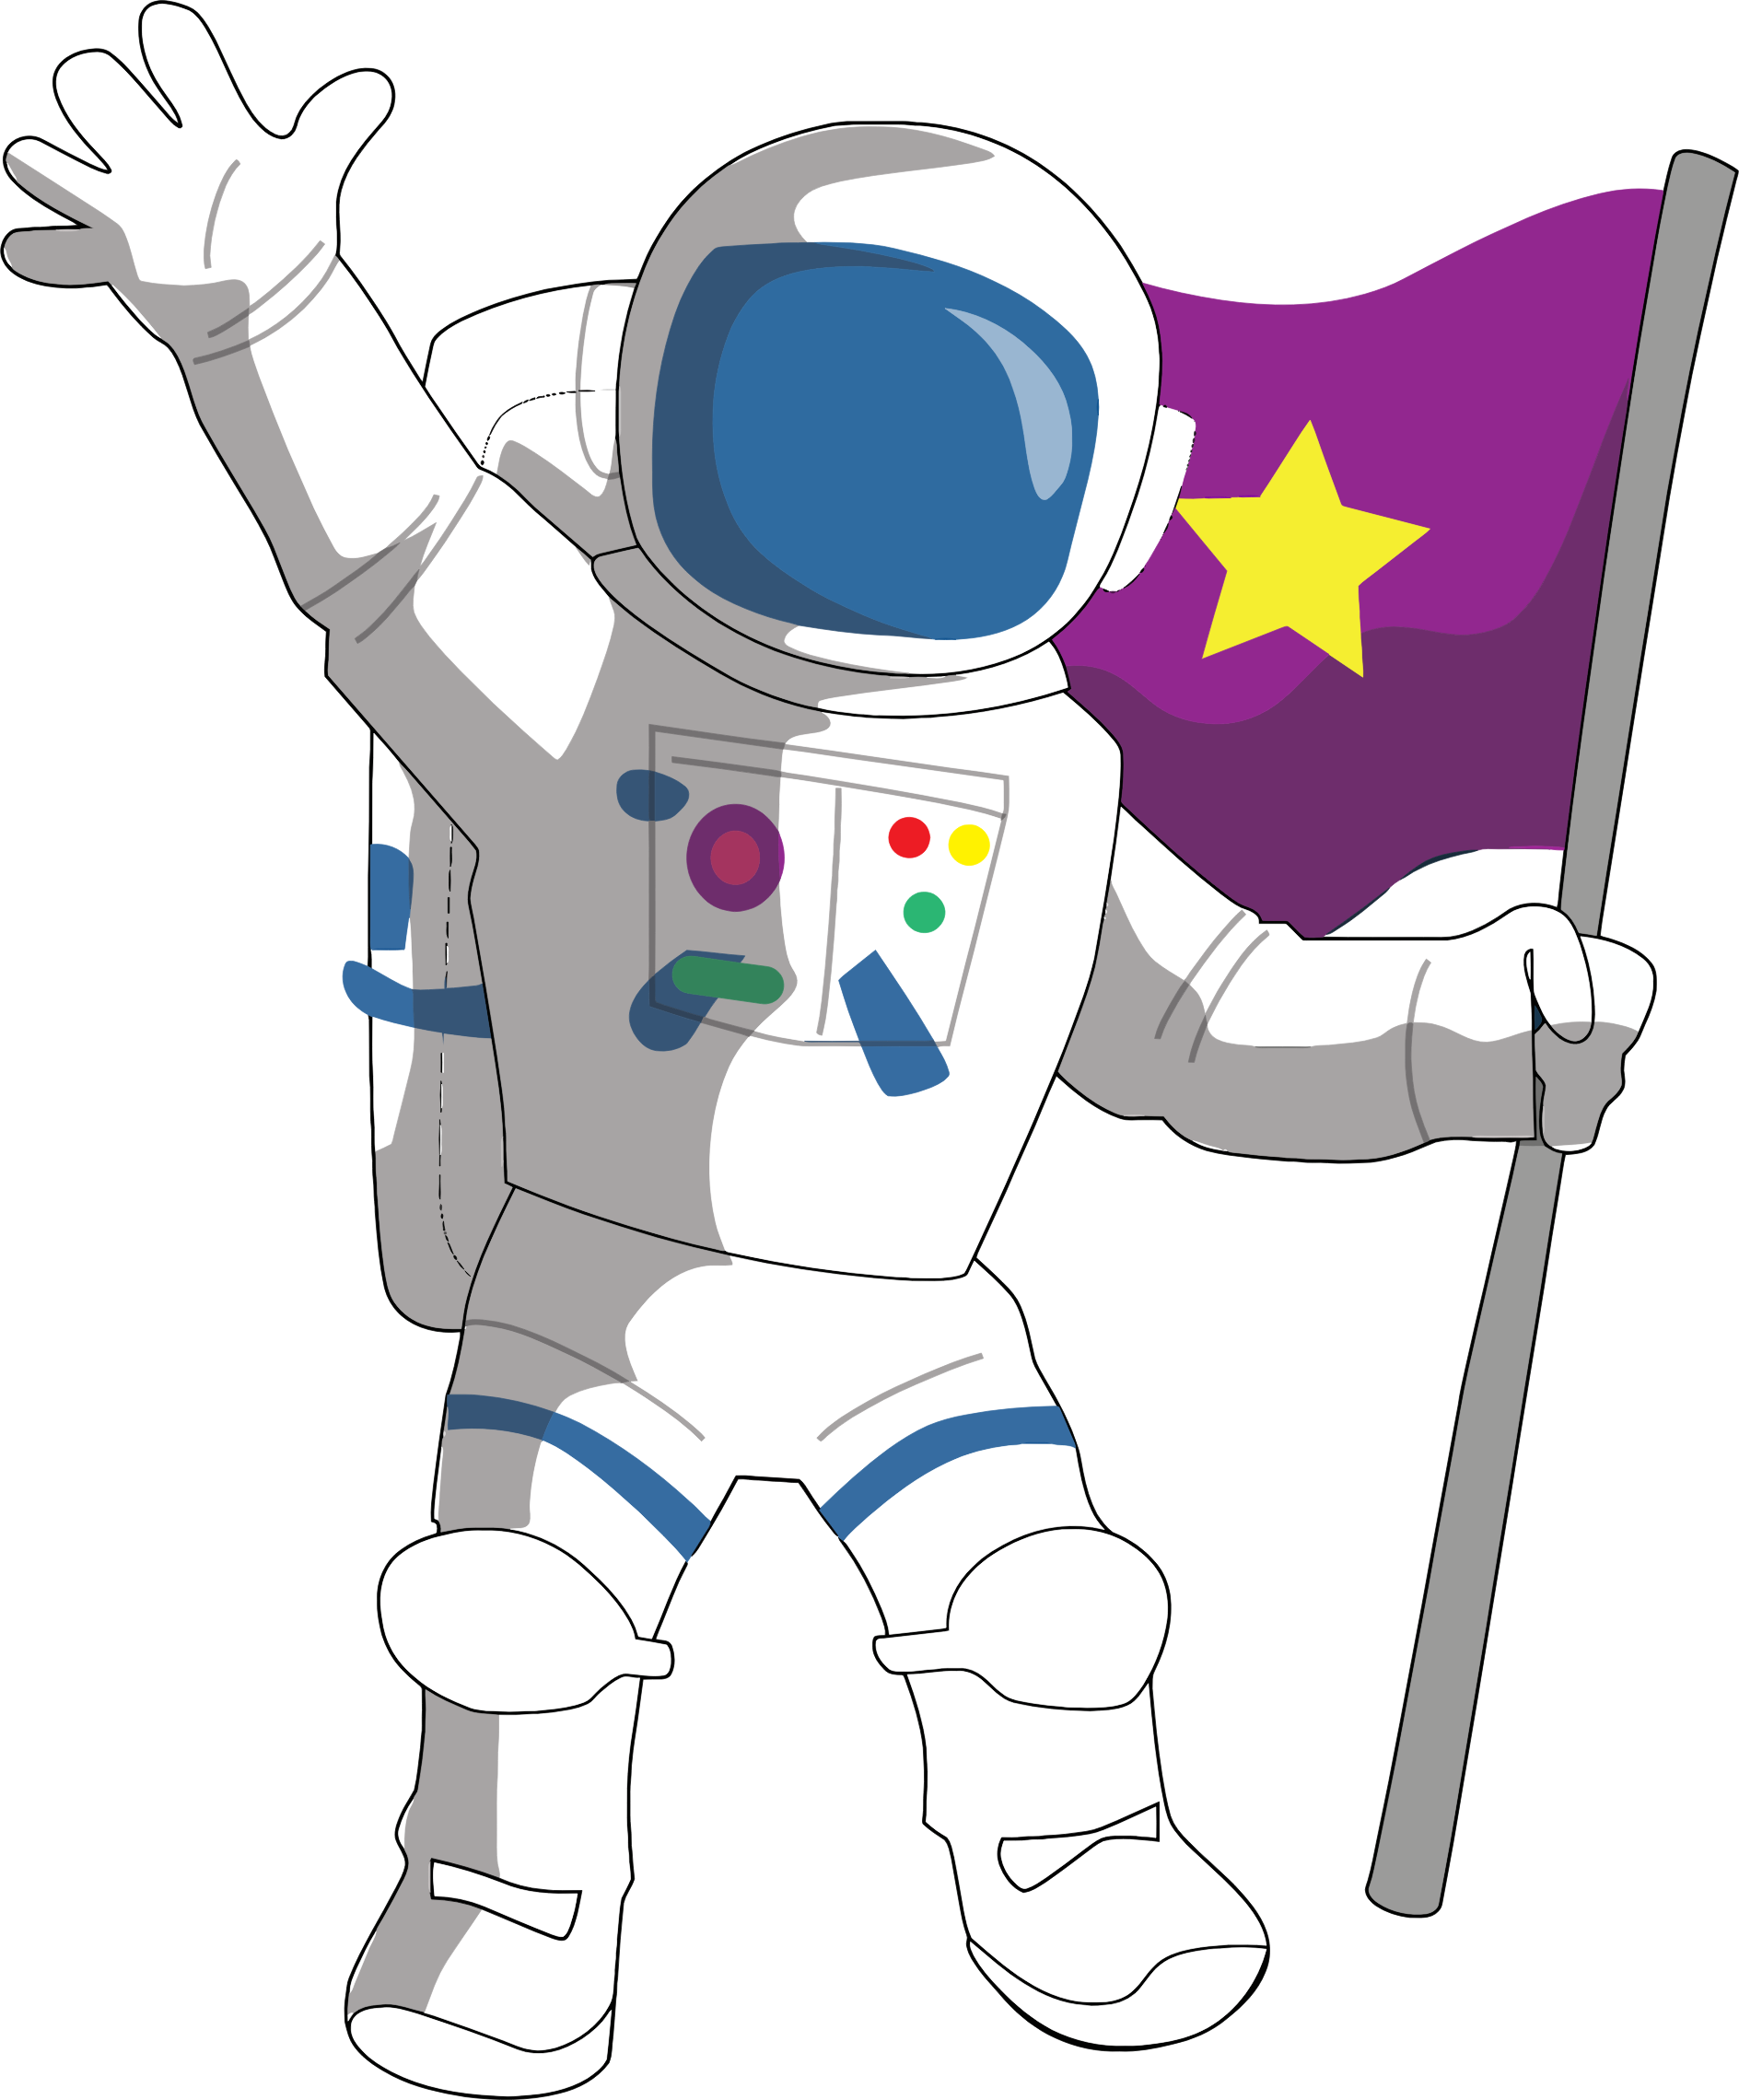 Astronaut hold Flag in Hand